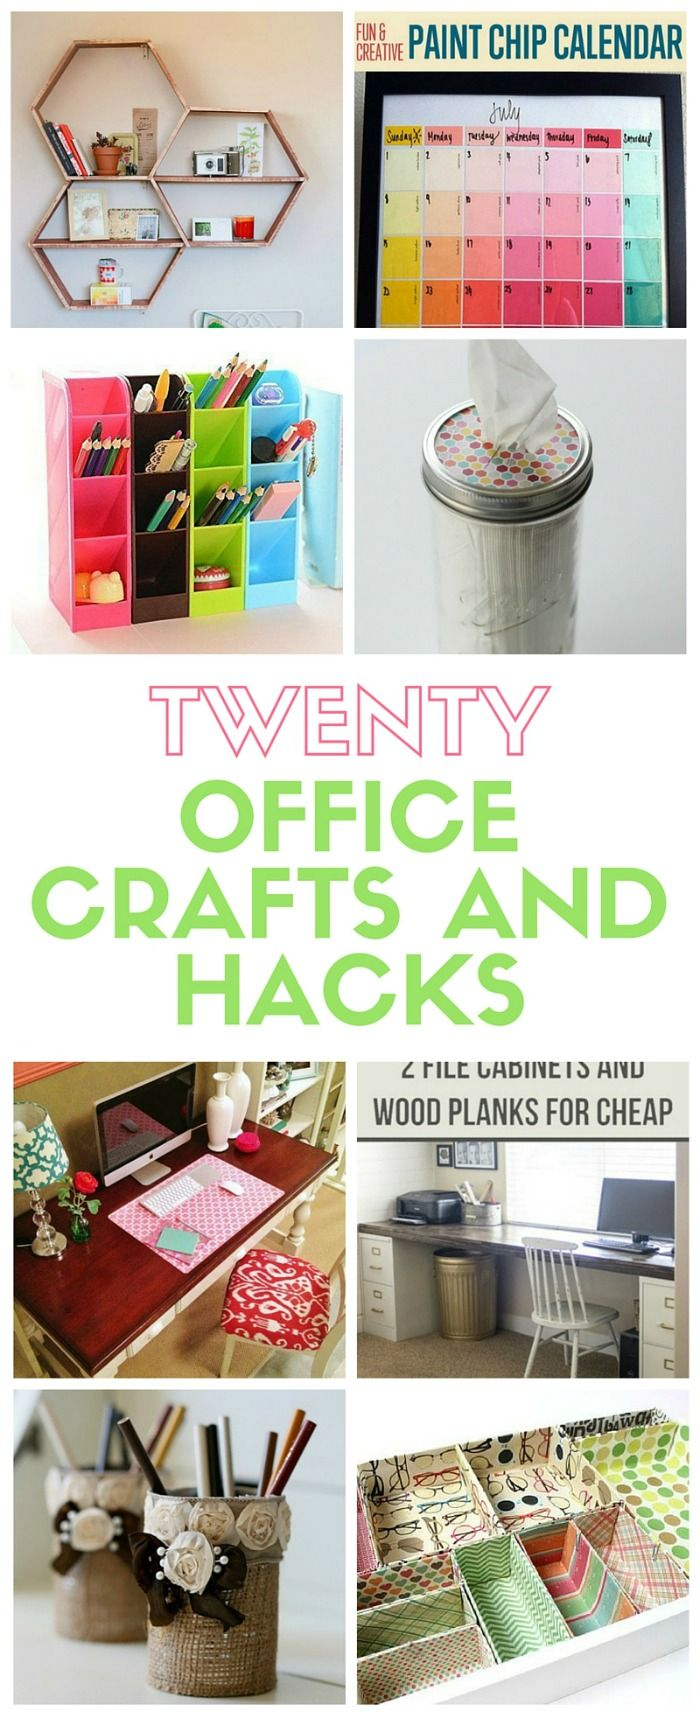 diy office space. 20 Office Crafts And Hacks Diy Space